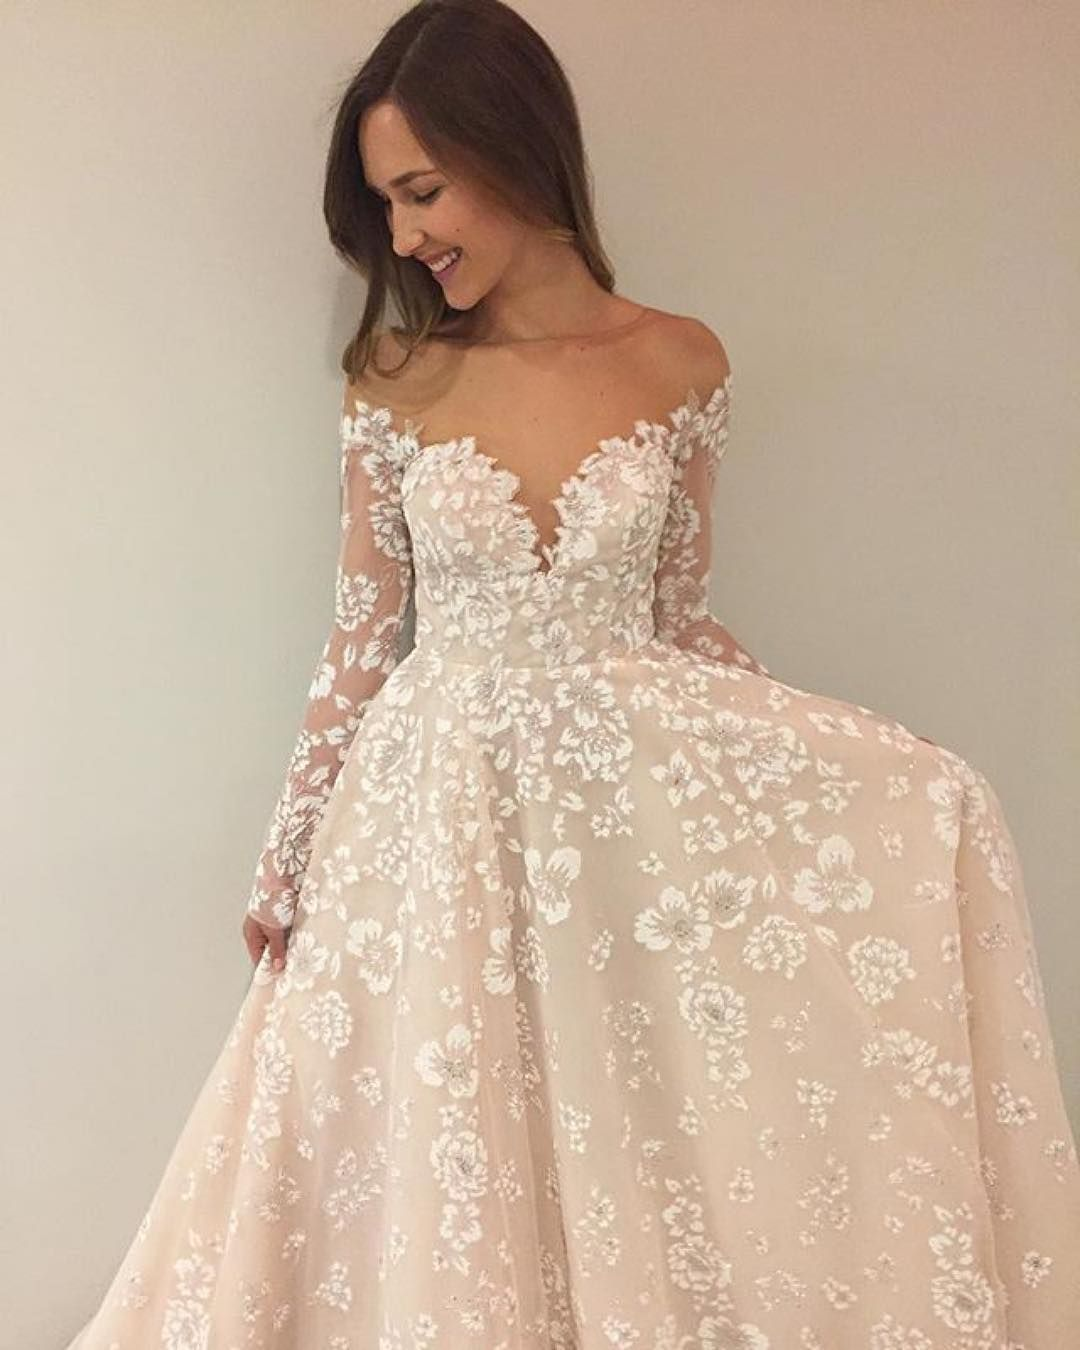 Jennifer S Bridal On Instagram Our Stevie Gown By Misshayleypaige Is Here More Pics Of This Gown Instore Wedding Dresses Bridal Fashion Week Bridal